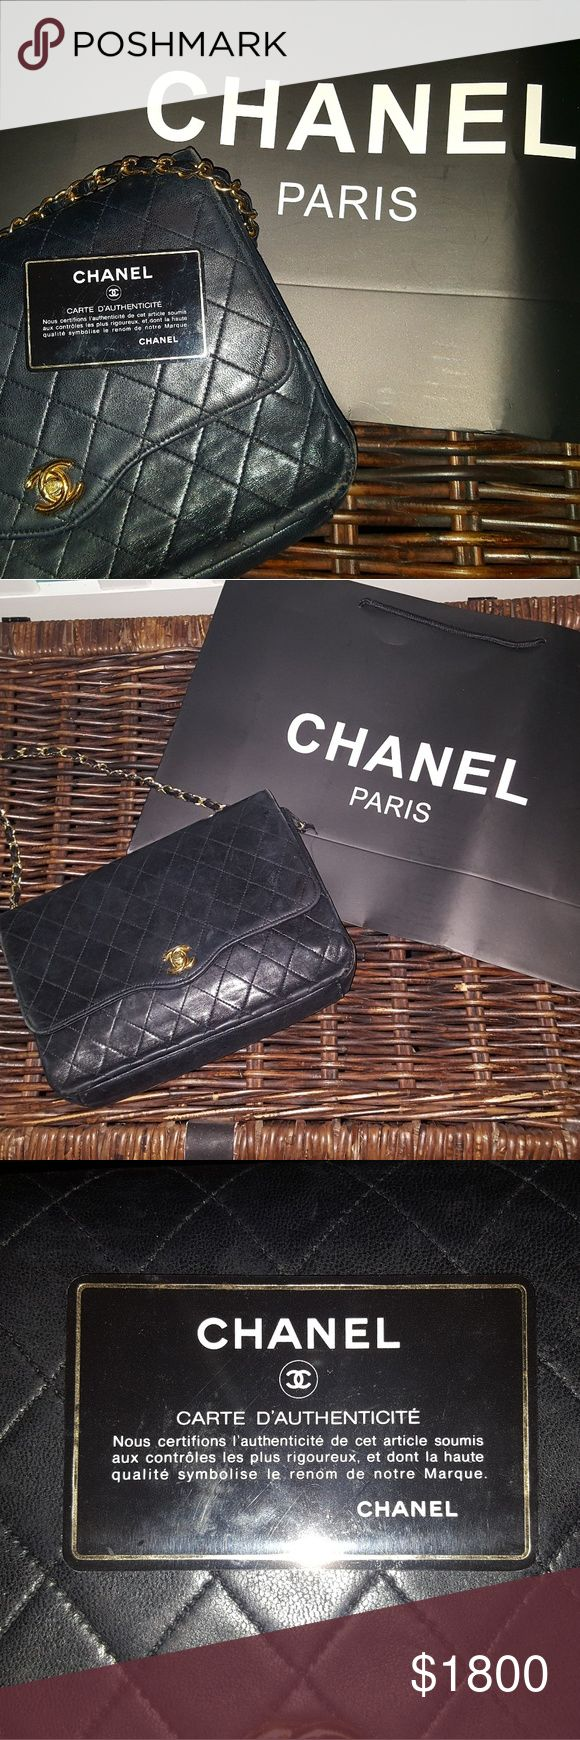 100% authentic black quilted Chanel bag Posh will authenticate! This stunning classic comes with authentication card and shopping bag. Gently loved- photos show wear, specifically on bottom edges. Measurements are 10x7 inches. Open to trades for similar black Chanel bags, specifically ones with double straps :) CHANEL Bags Shoulder Bags